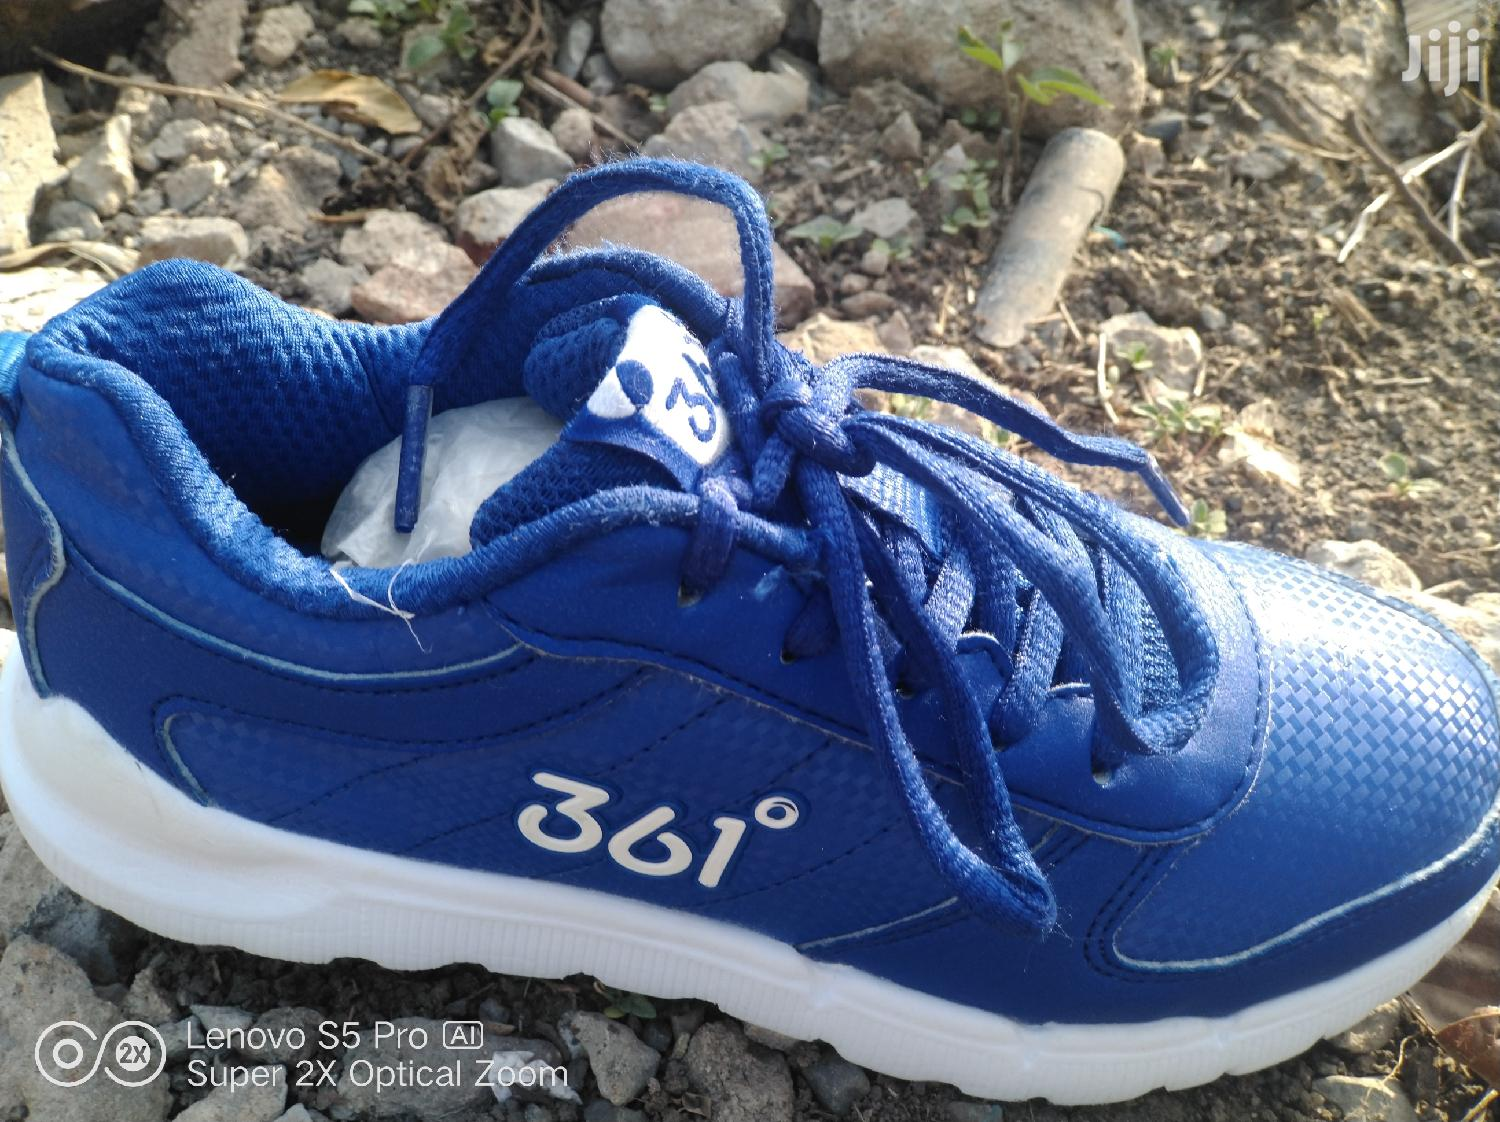 Archive: Boys Sneakers